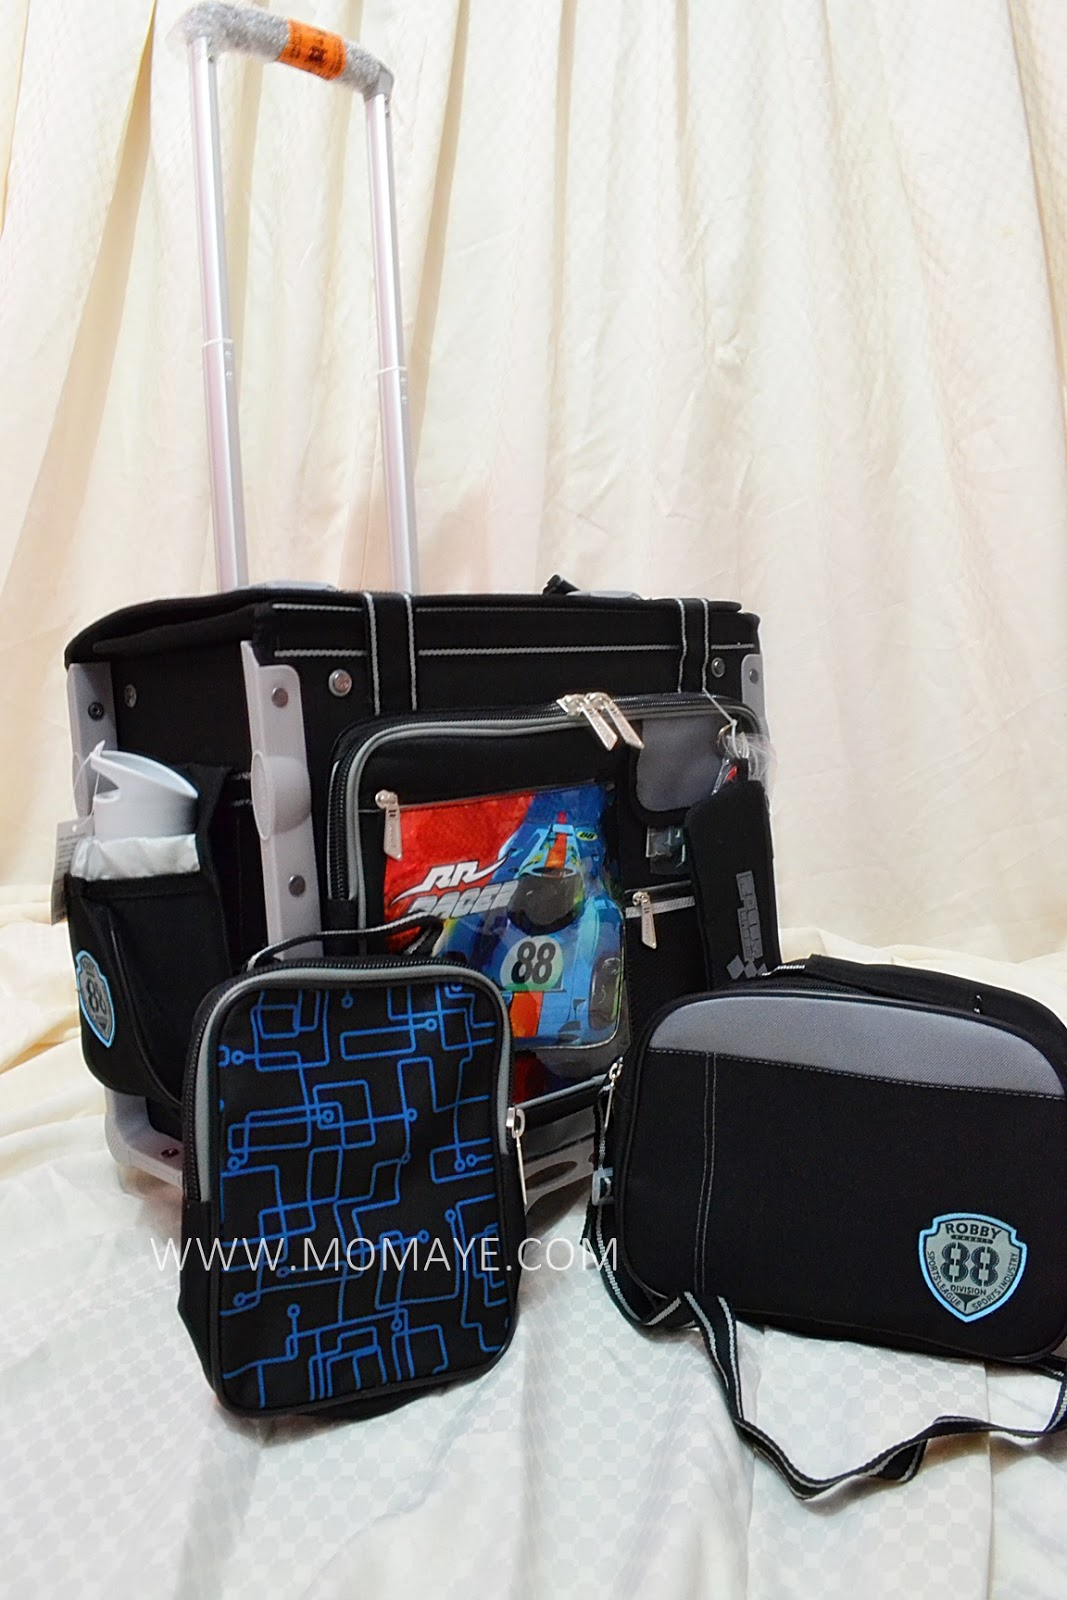 Matthew's Robby Rabbit Trolley Bag